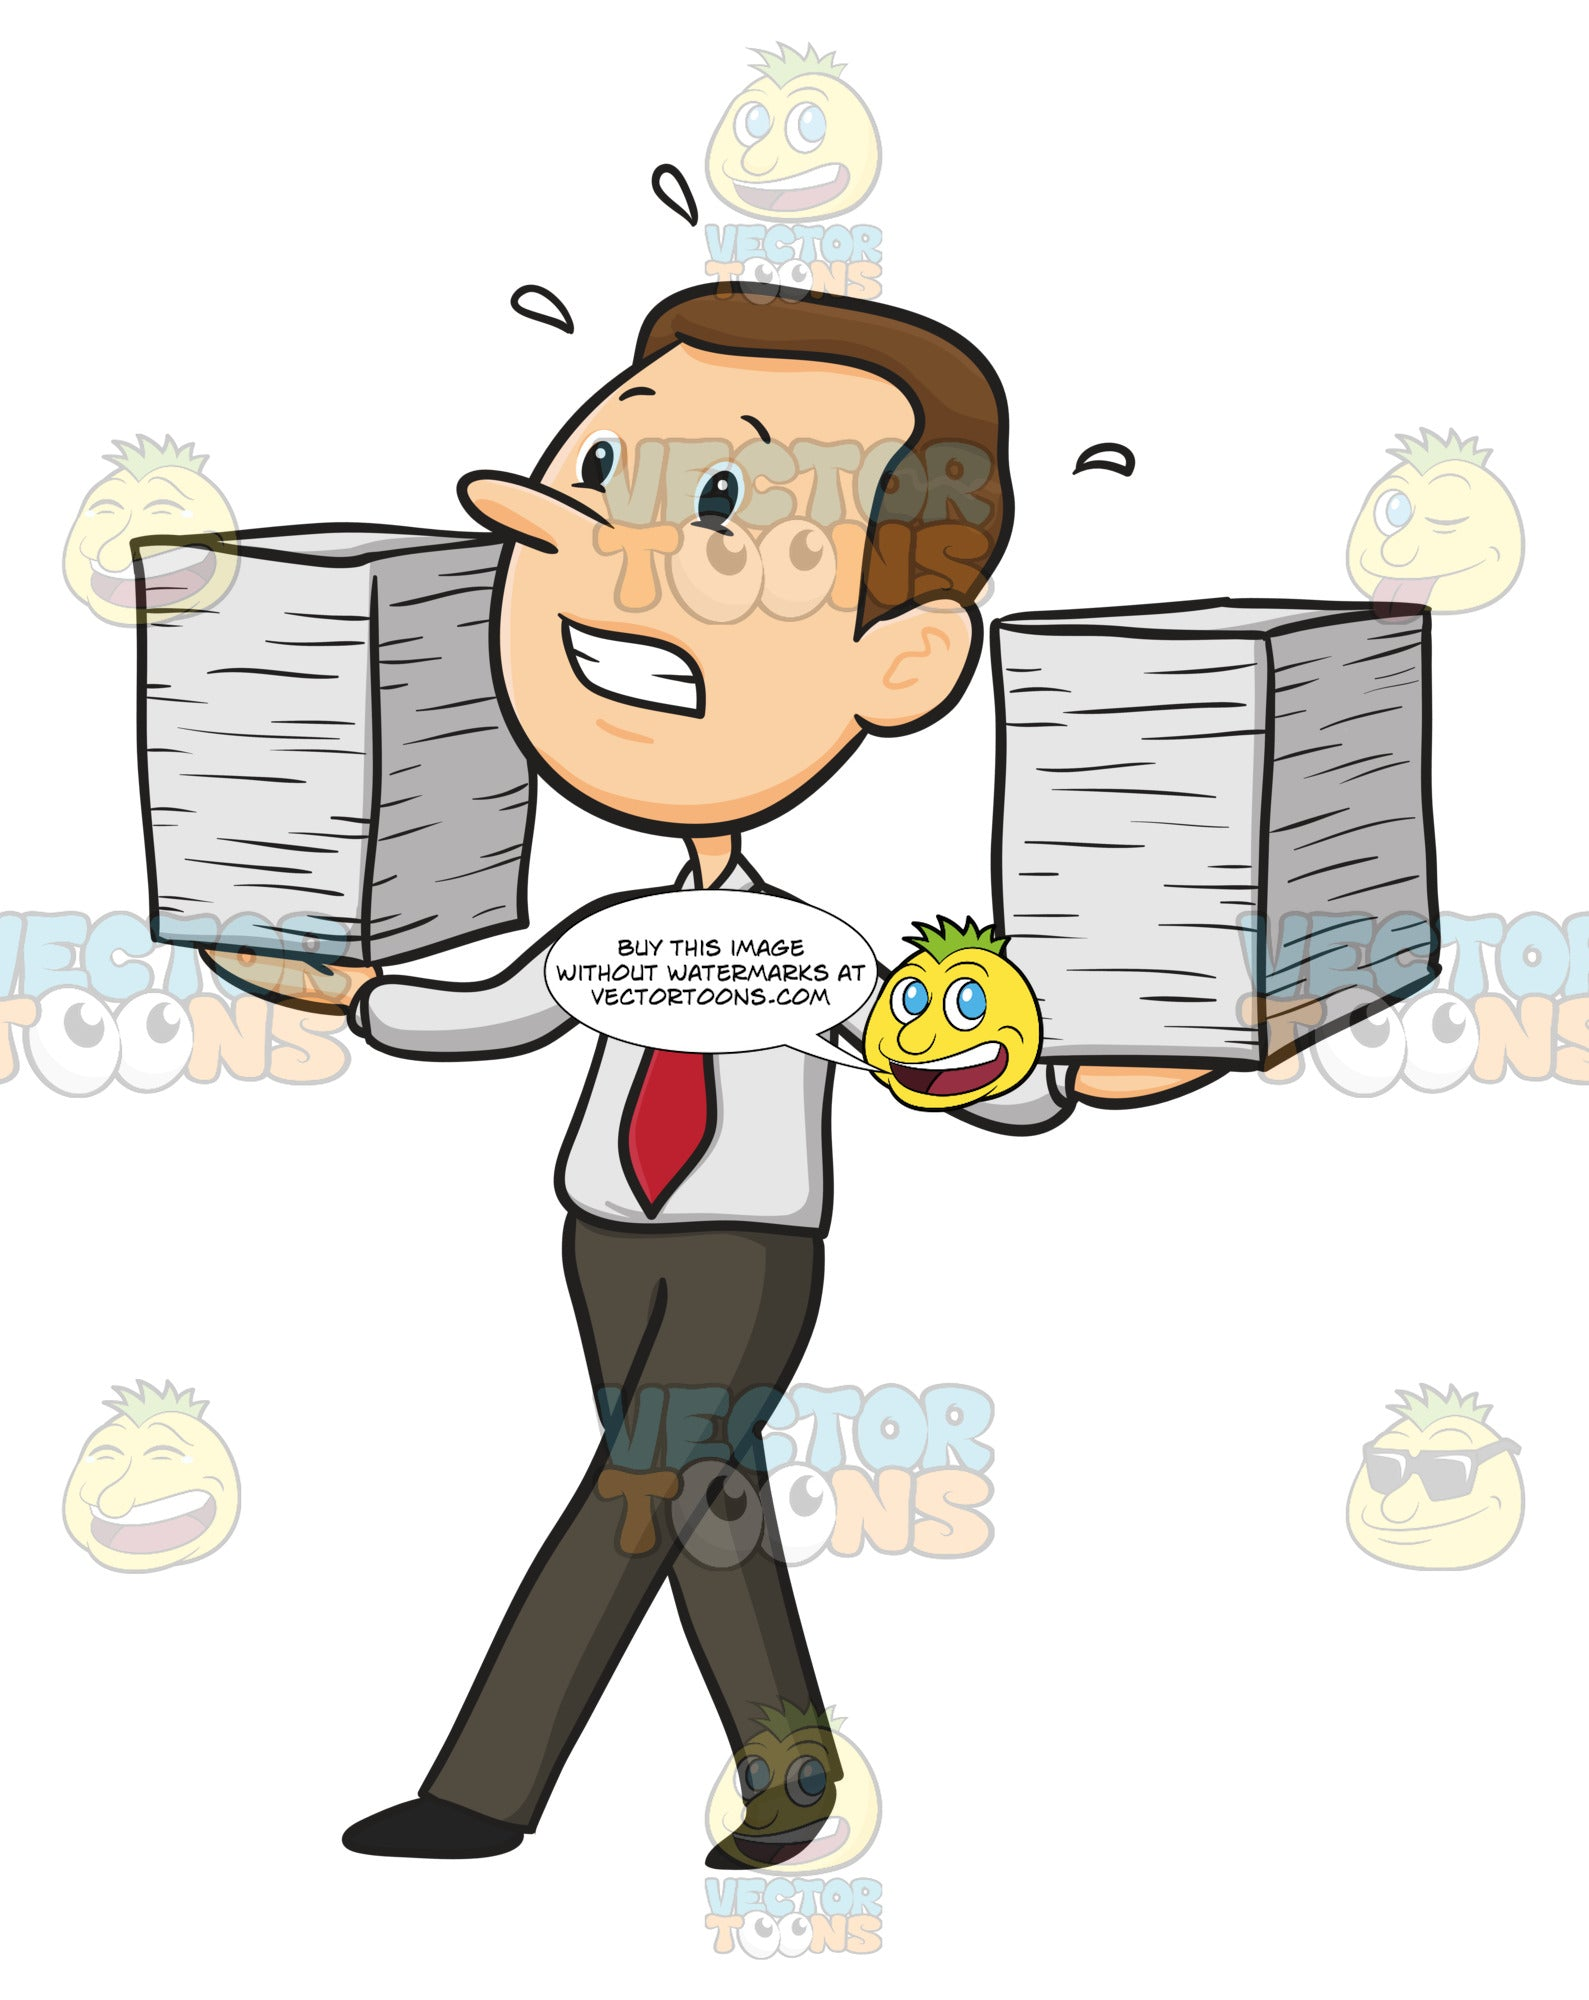 Man In Tie And Button Down Shirt Baslances Two Stacks Of Paper In Each Hand Looking Nervous, Stressed